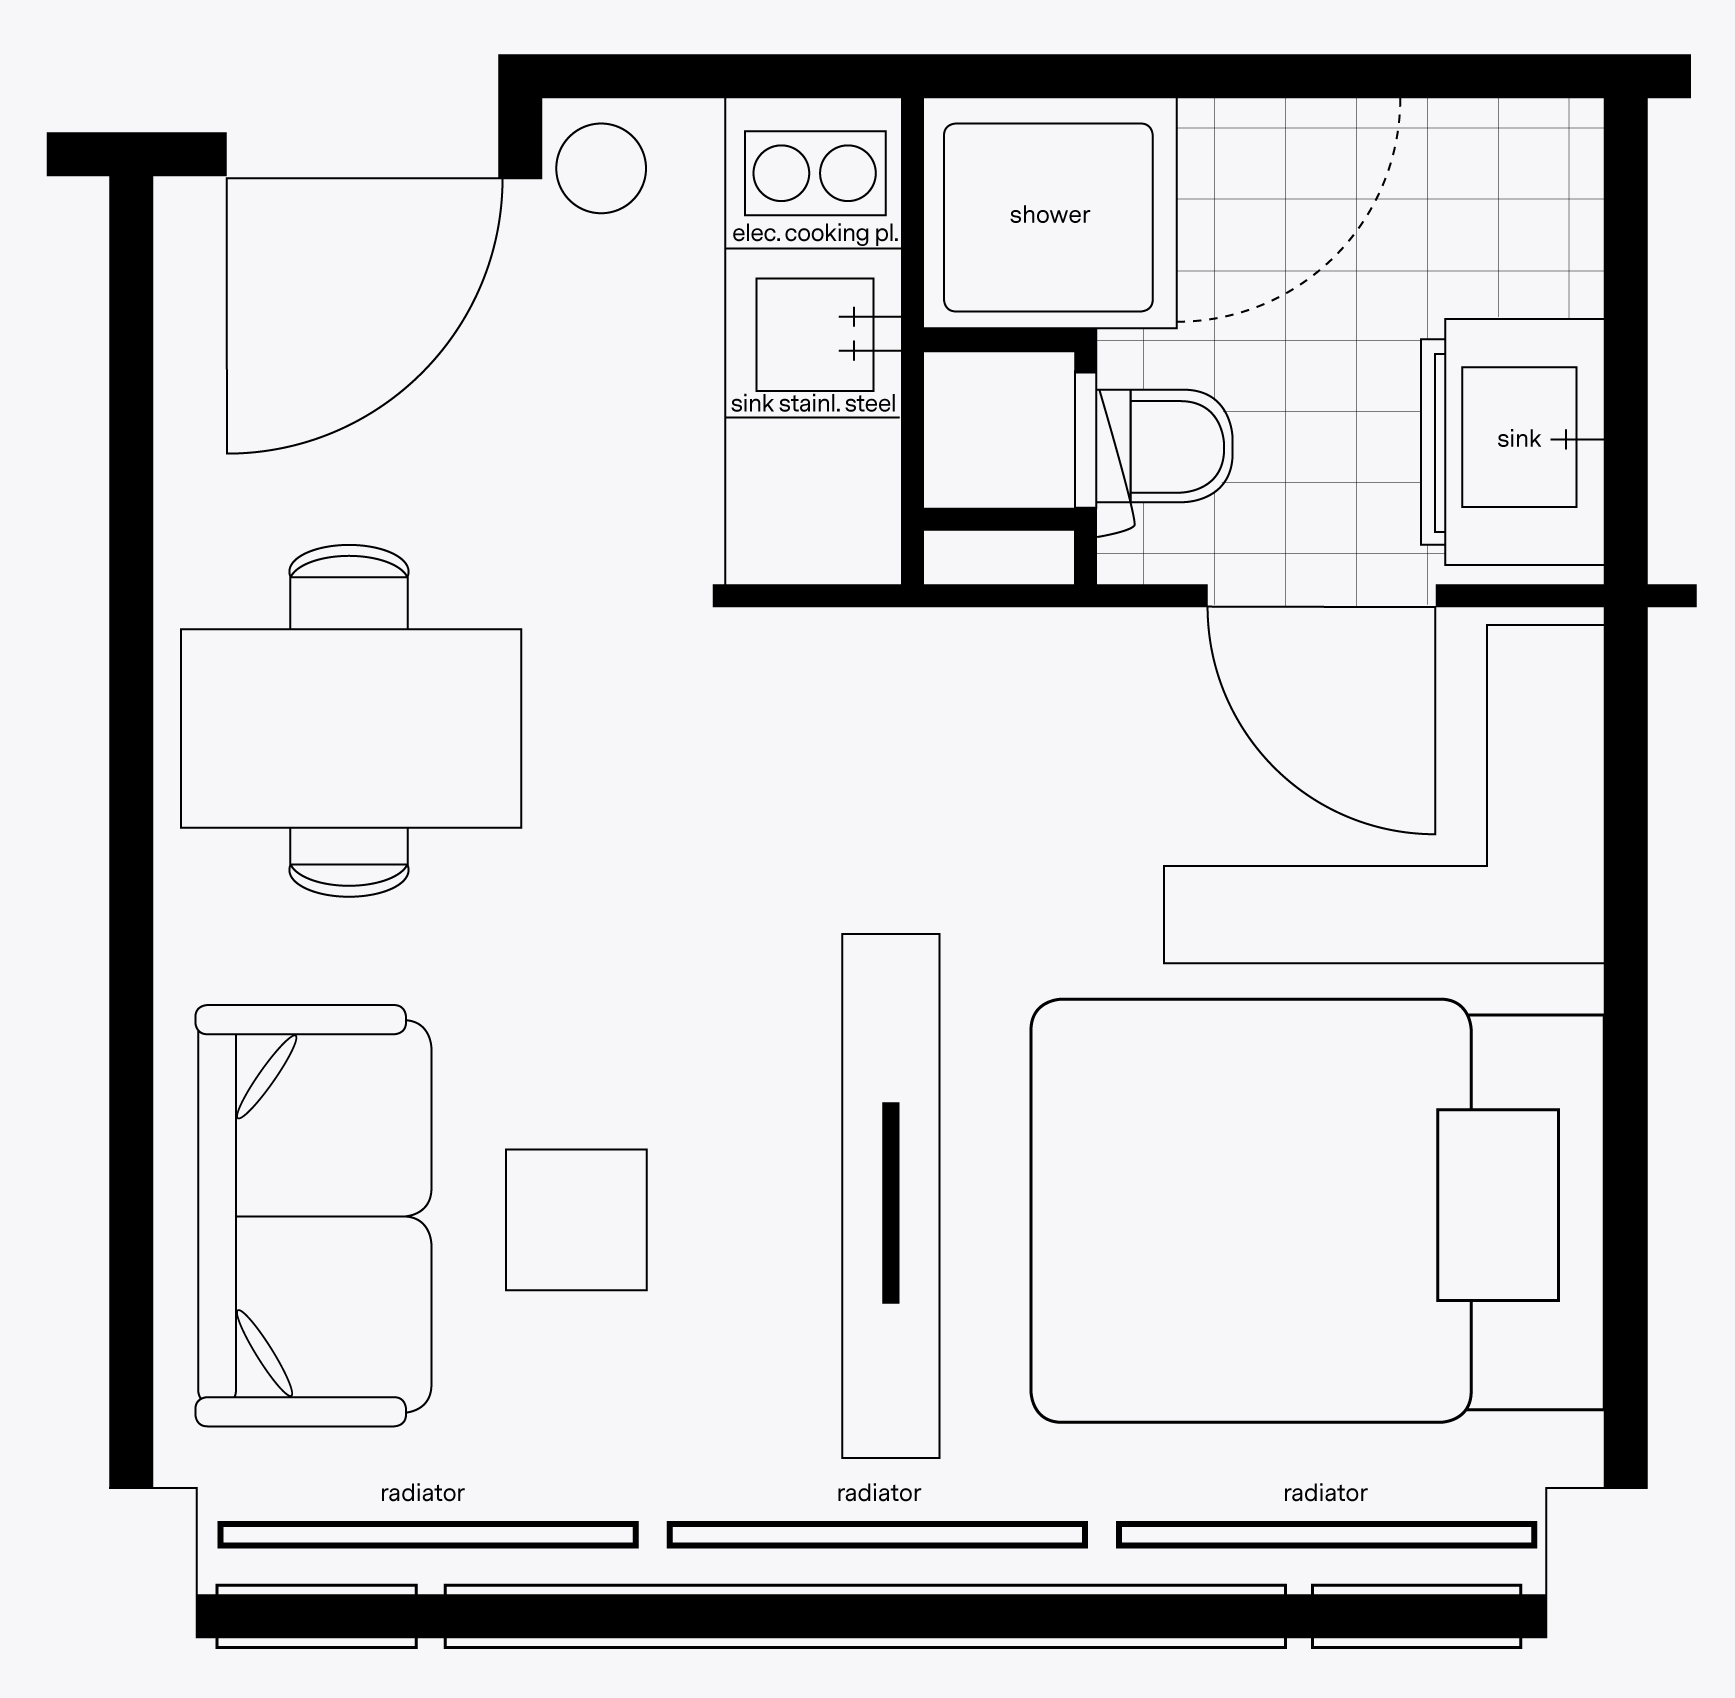 OurCampus two person apartment unfurnished floorplan